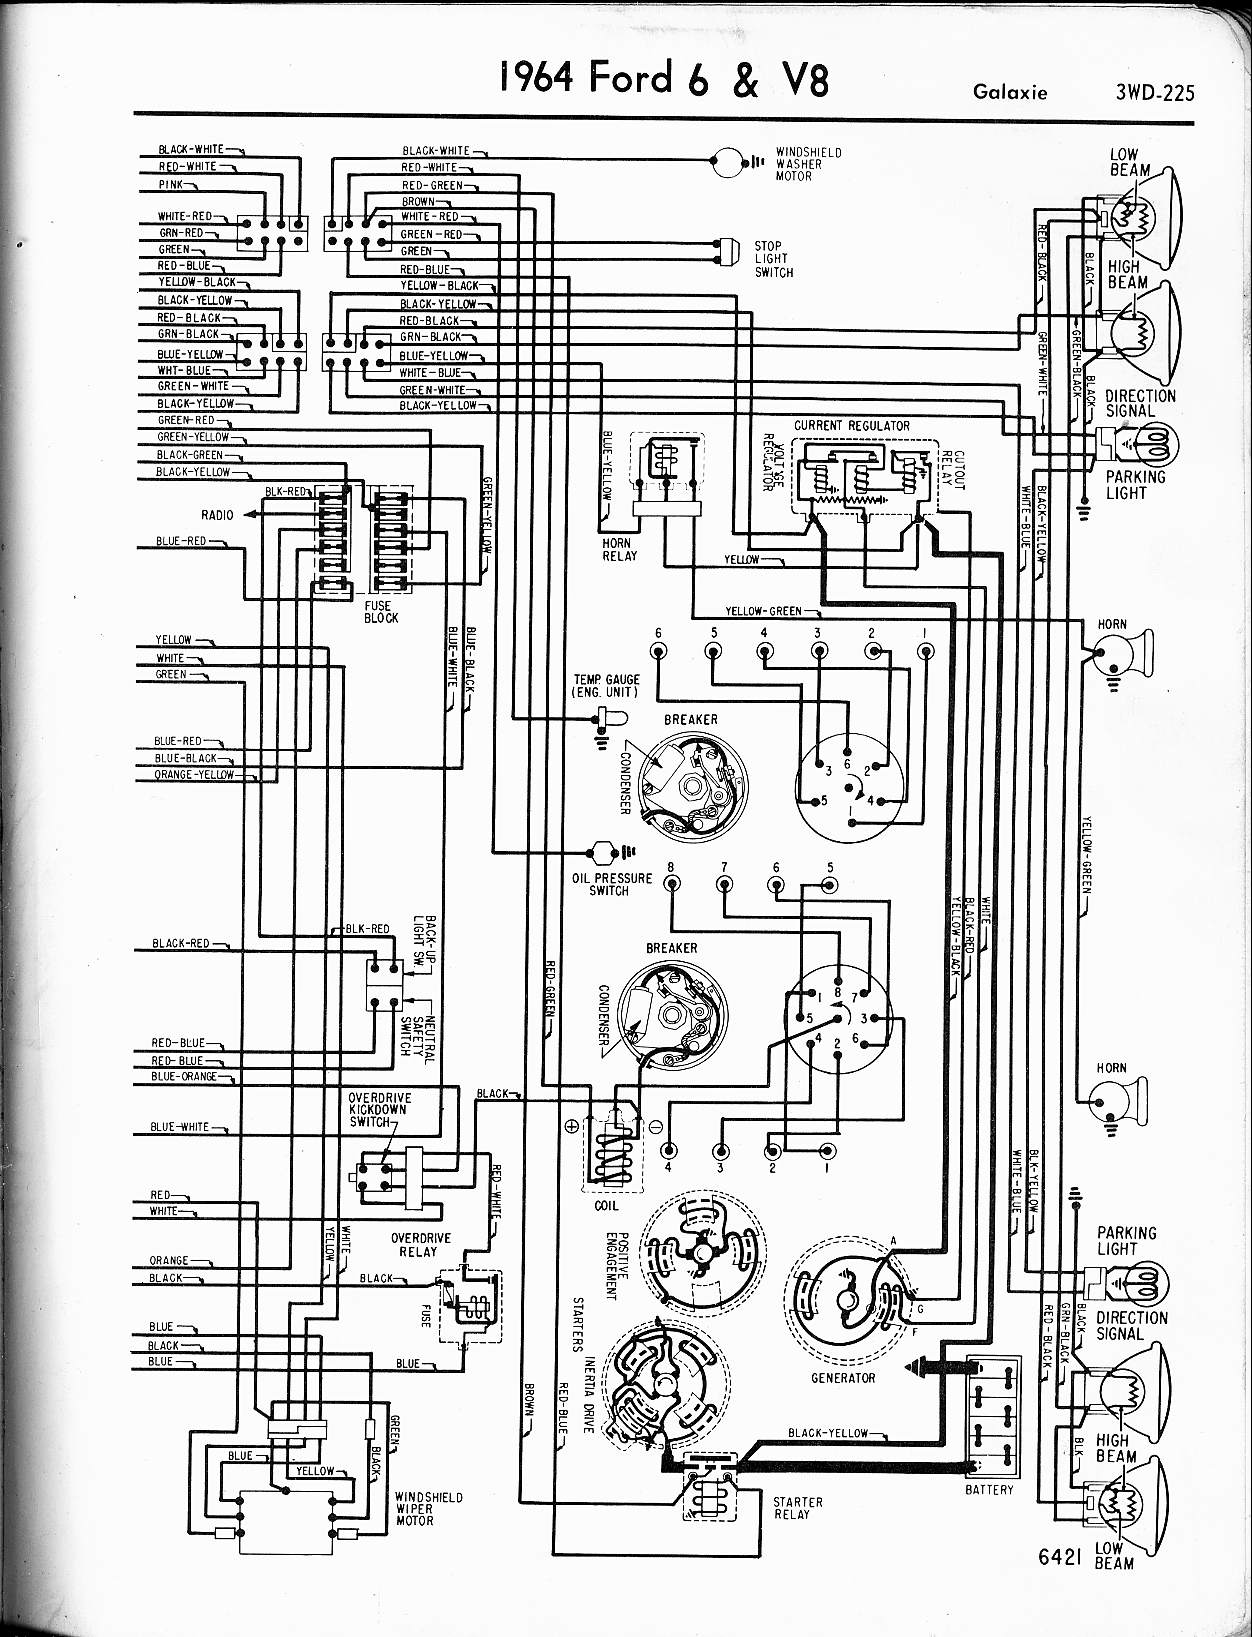 MWire5765 225 1968 econoline parts diagram wiring diagram simonand 1968 ford wiring diagrams at arjmand.co